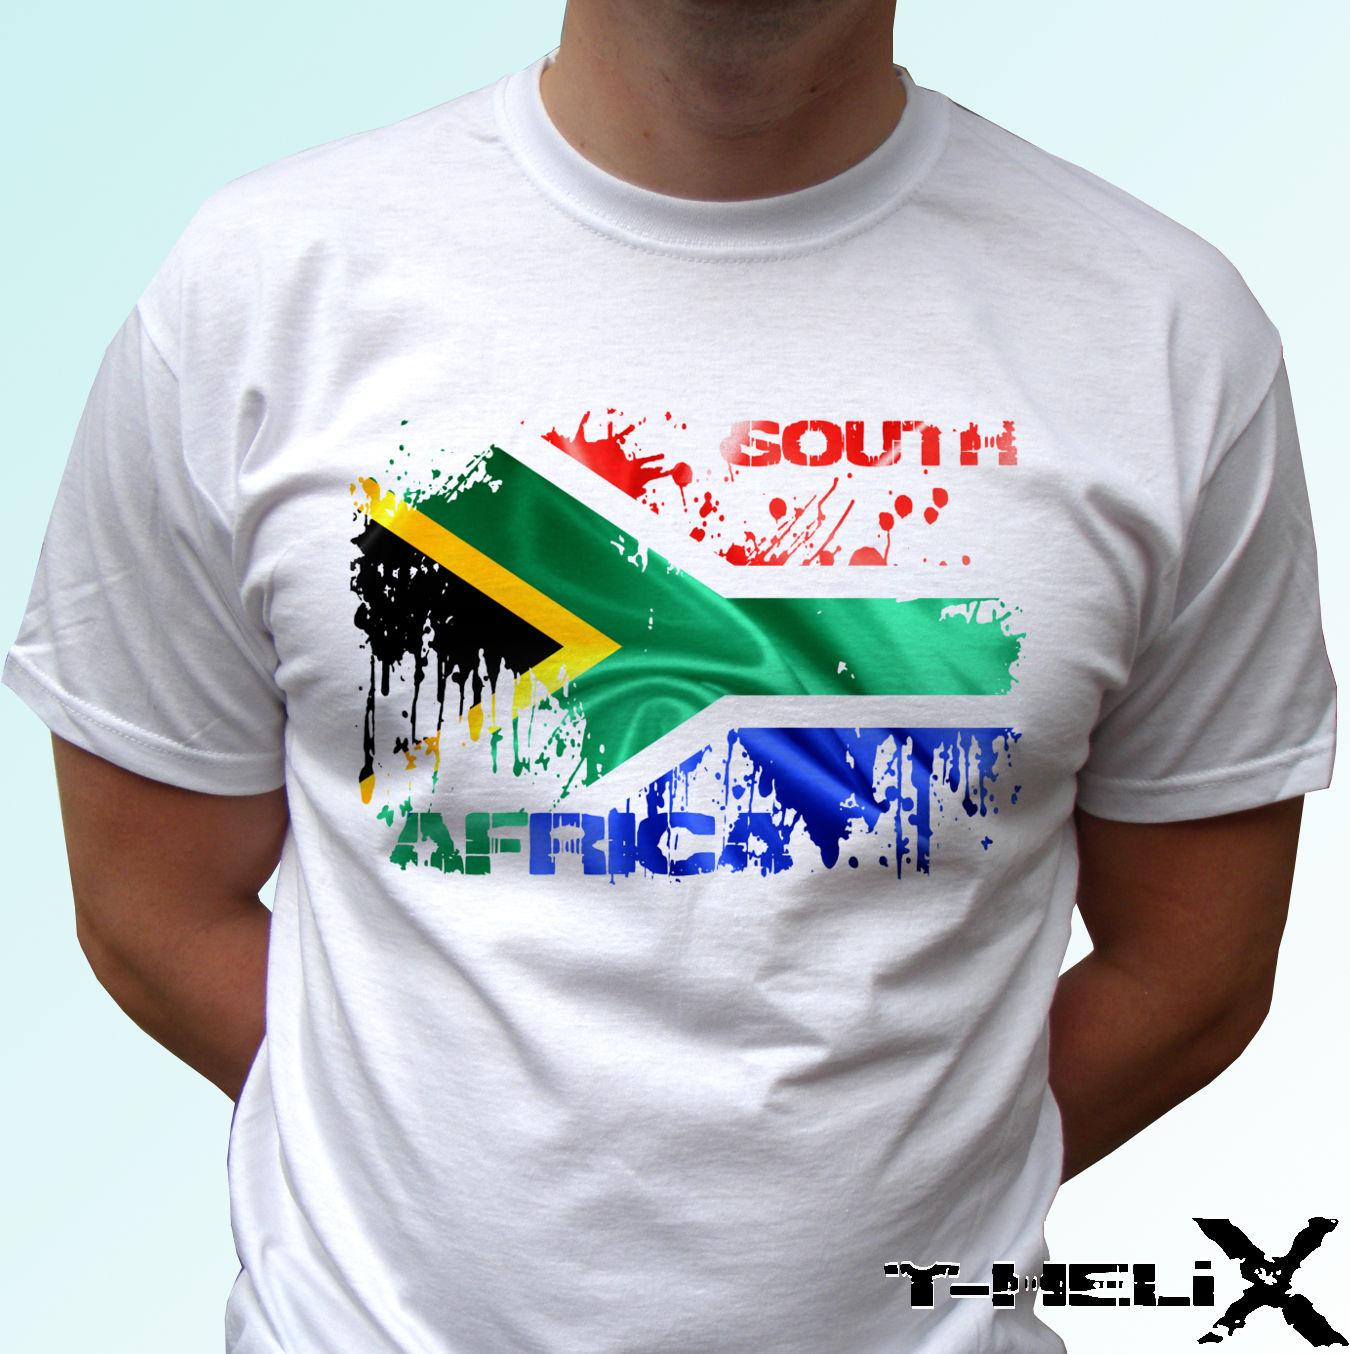 92a5f58a South Africa Flag White T Shirt Top Country Design Mens Womens Kids & Baby Funny  Tops Tee New Unisex Funny Tops Coolest Shirts Funny T Shirt Slogans From ...